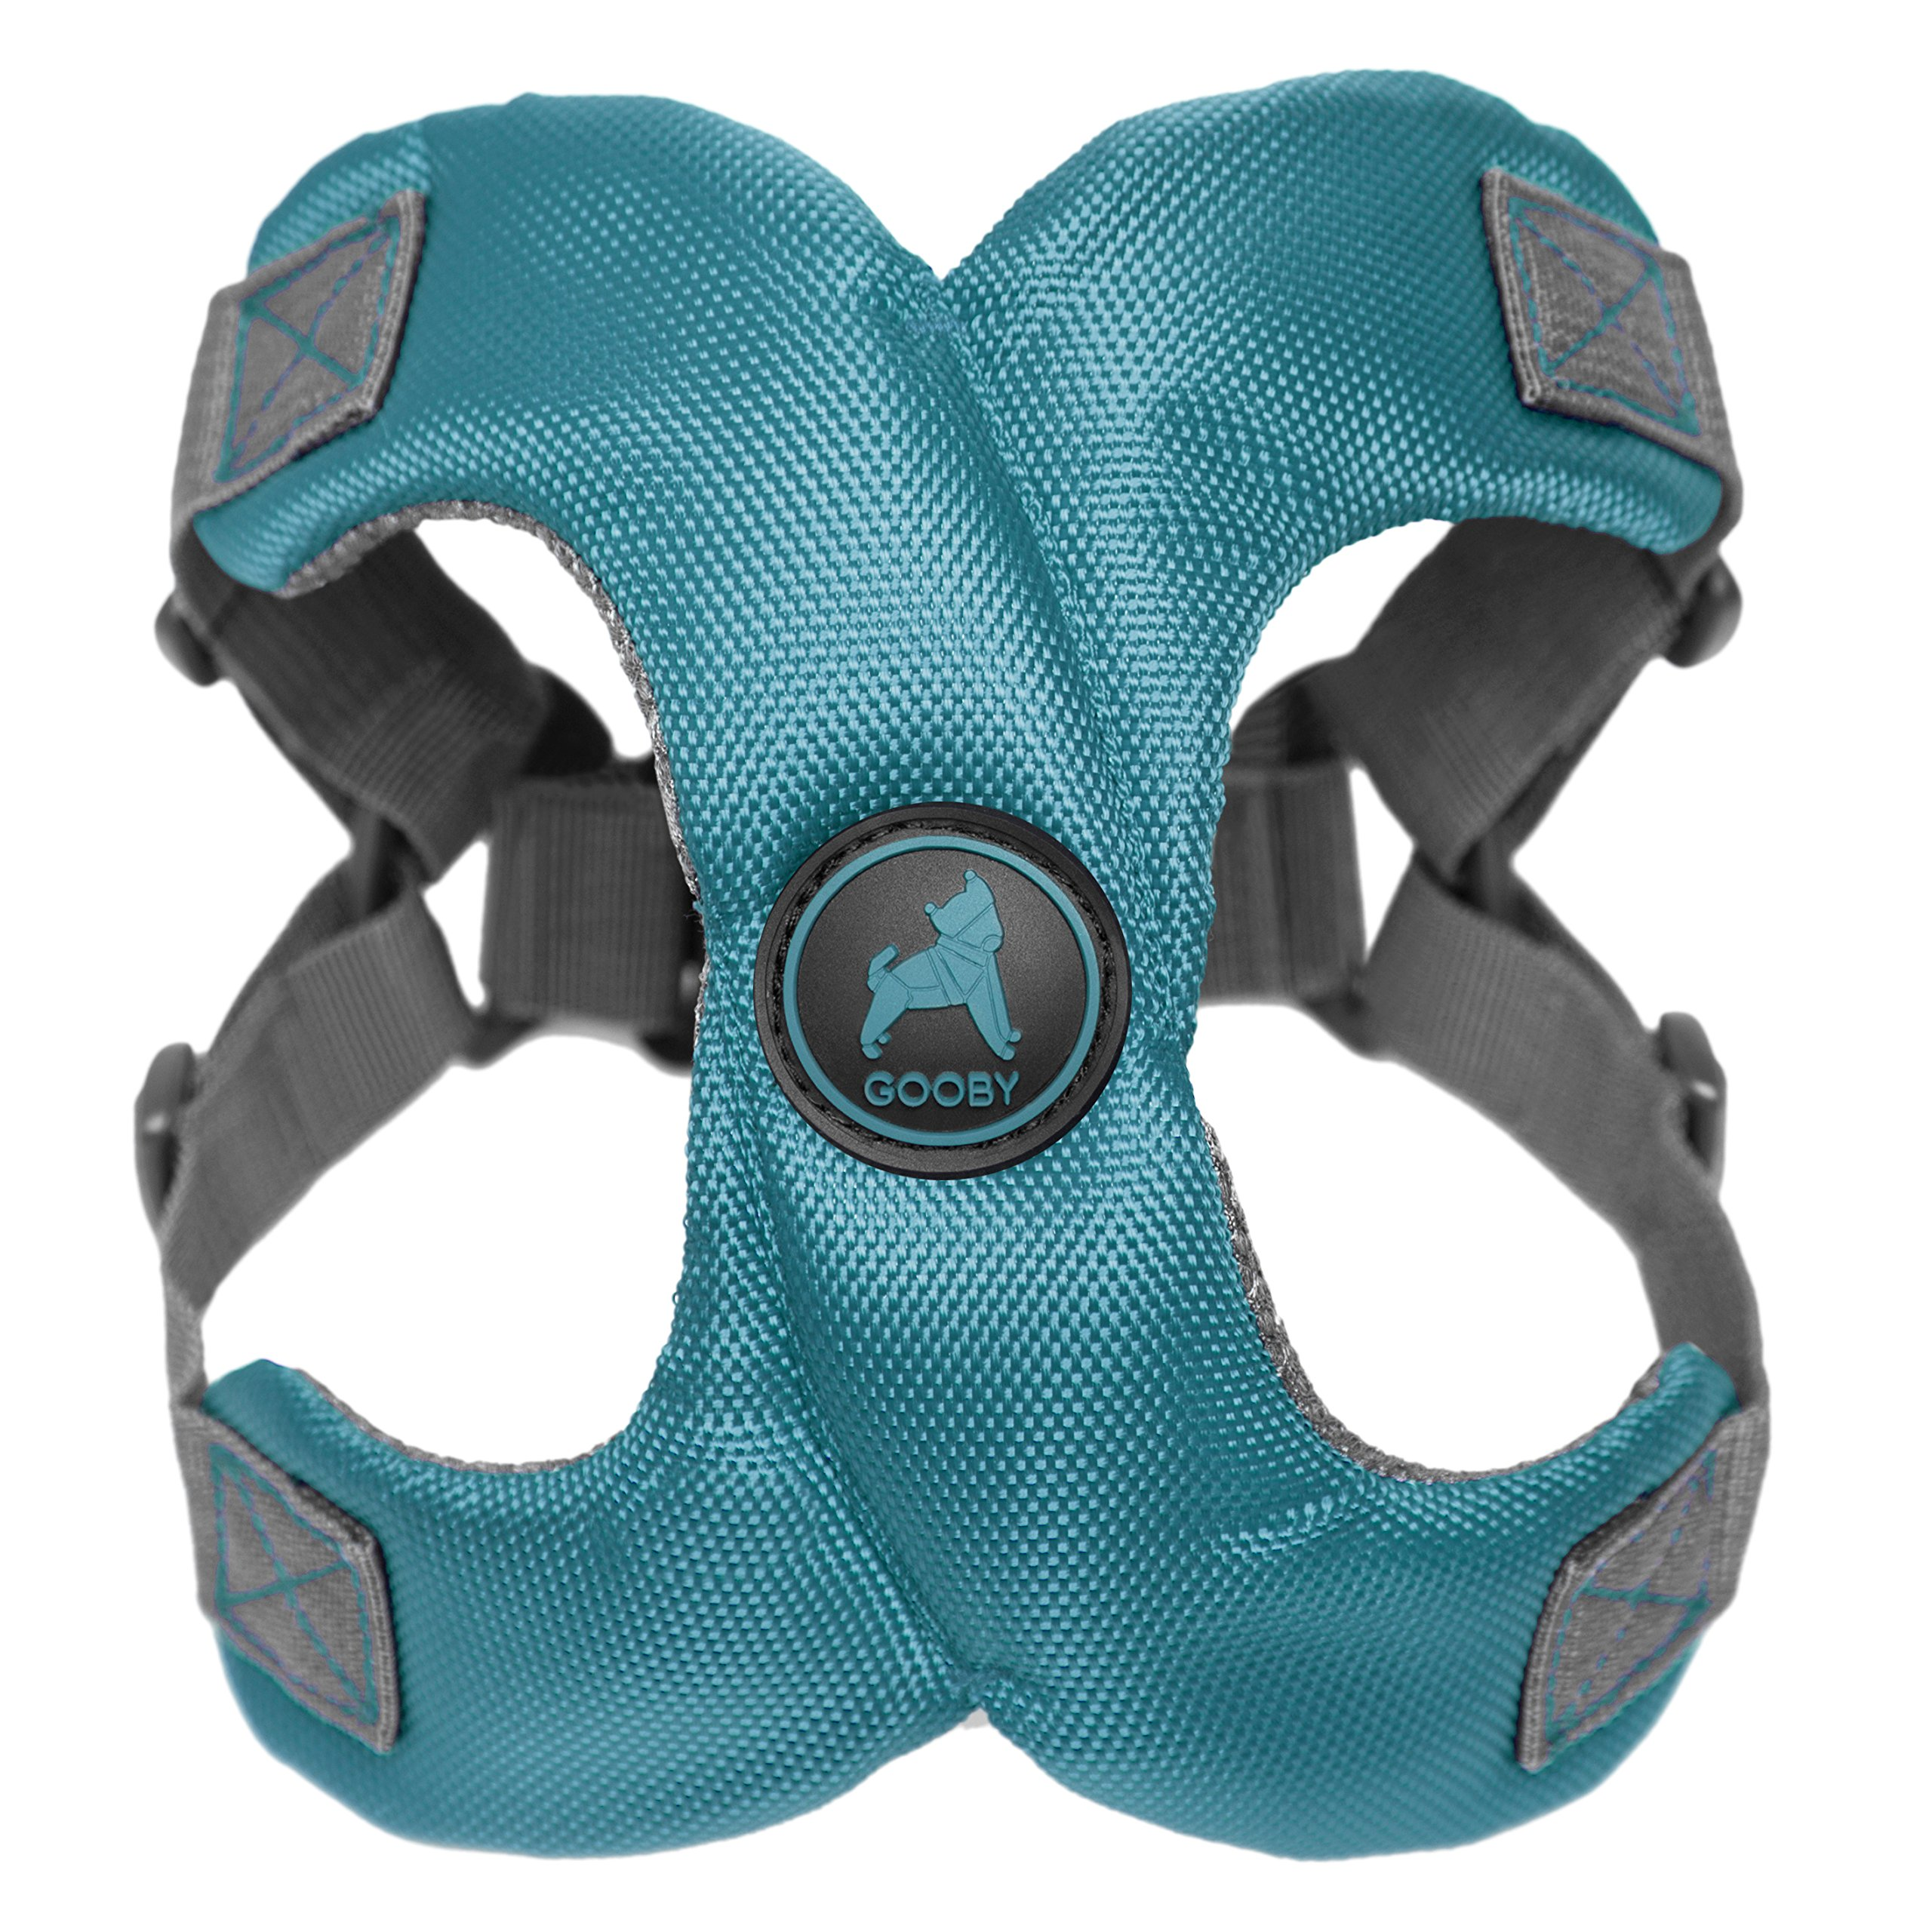 [Old Version] Gooby Escape Free Memory Foam Harness for Small Dogs, Turquoise, Large